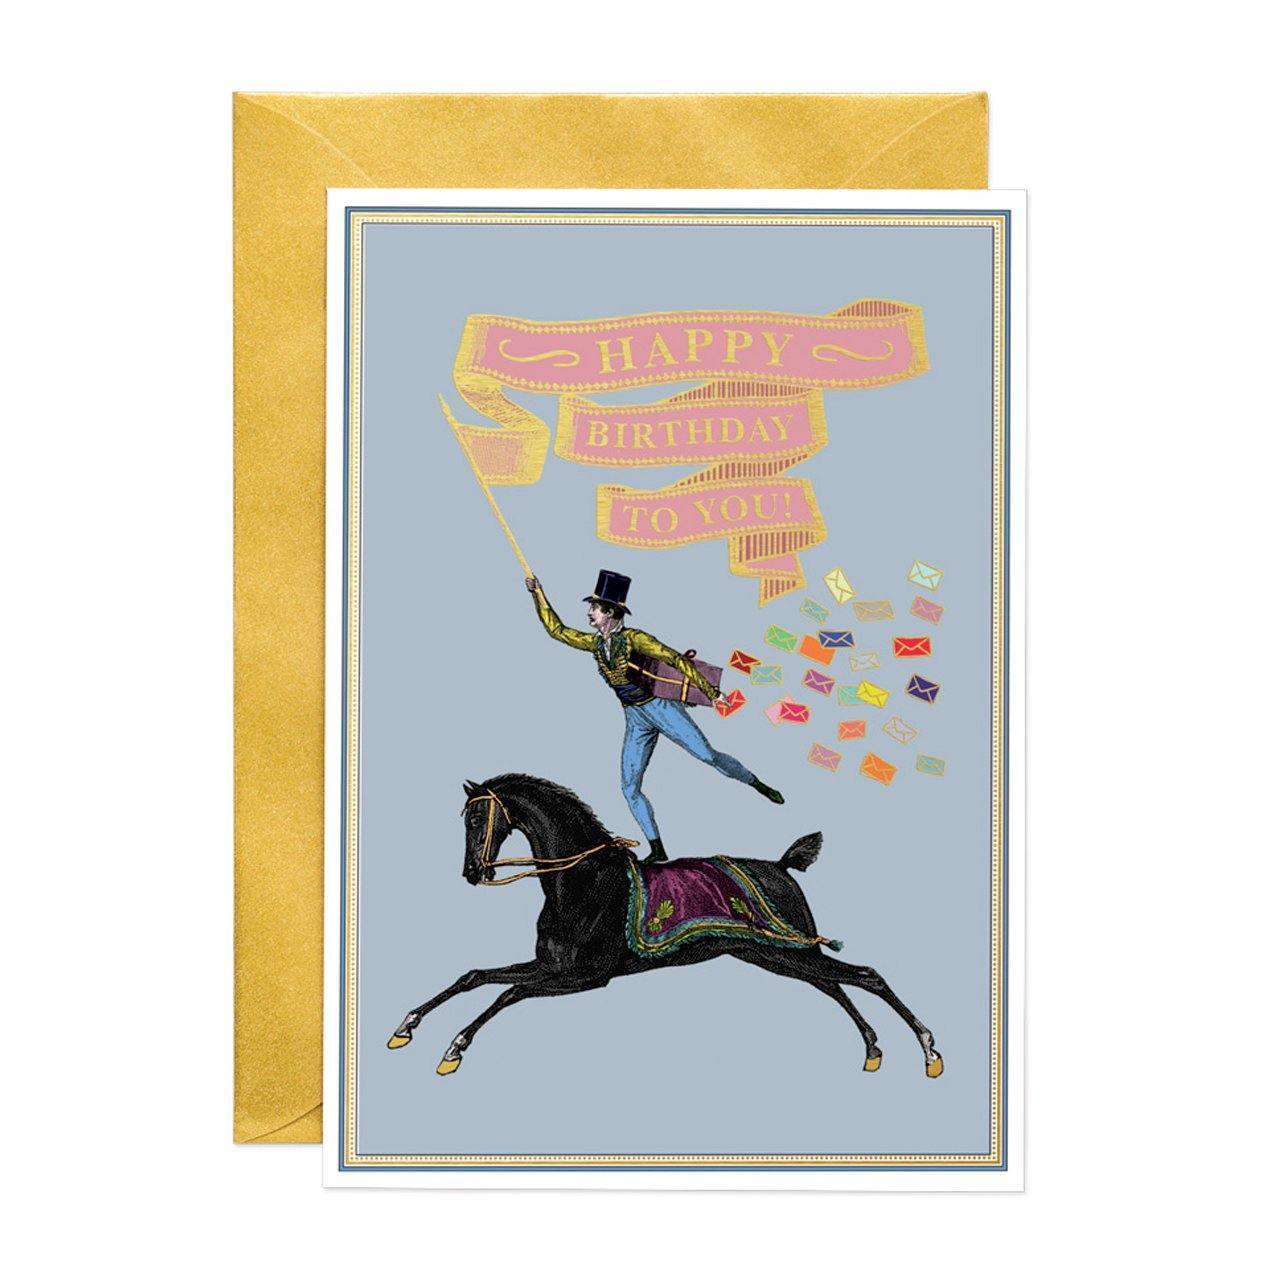 Happy Birthday Rider (LARGE) Greeting Card - Chase and Wonder - Proudly Made in Britain